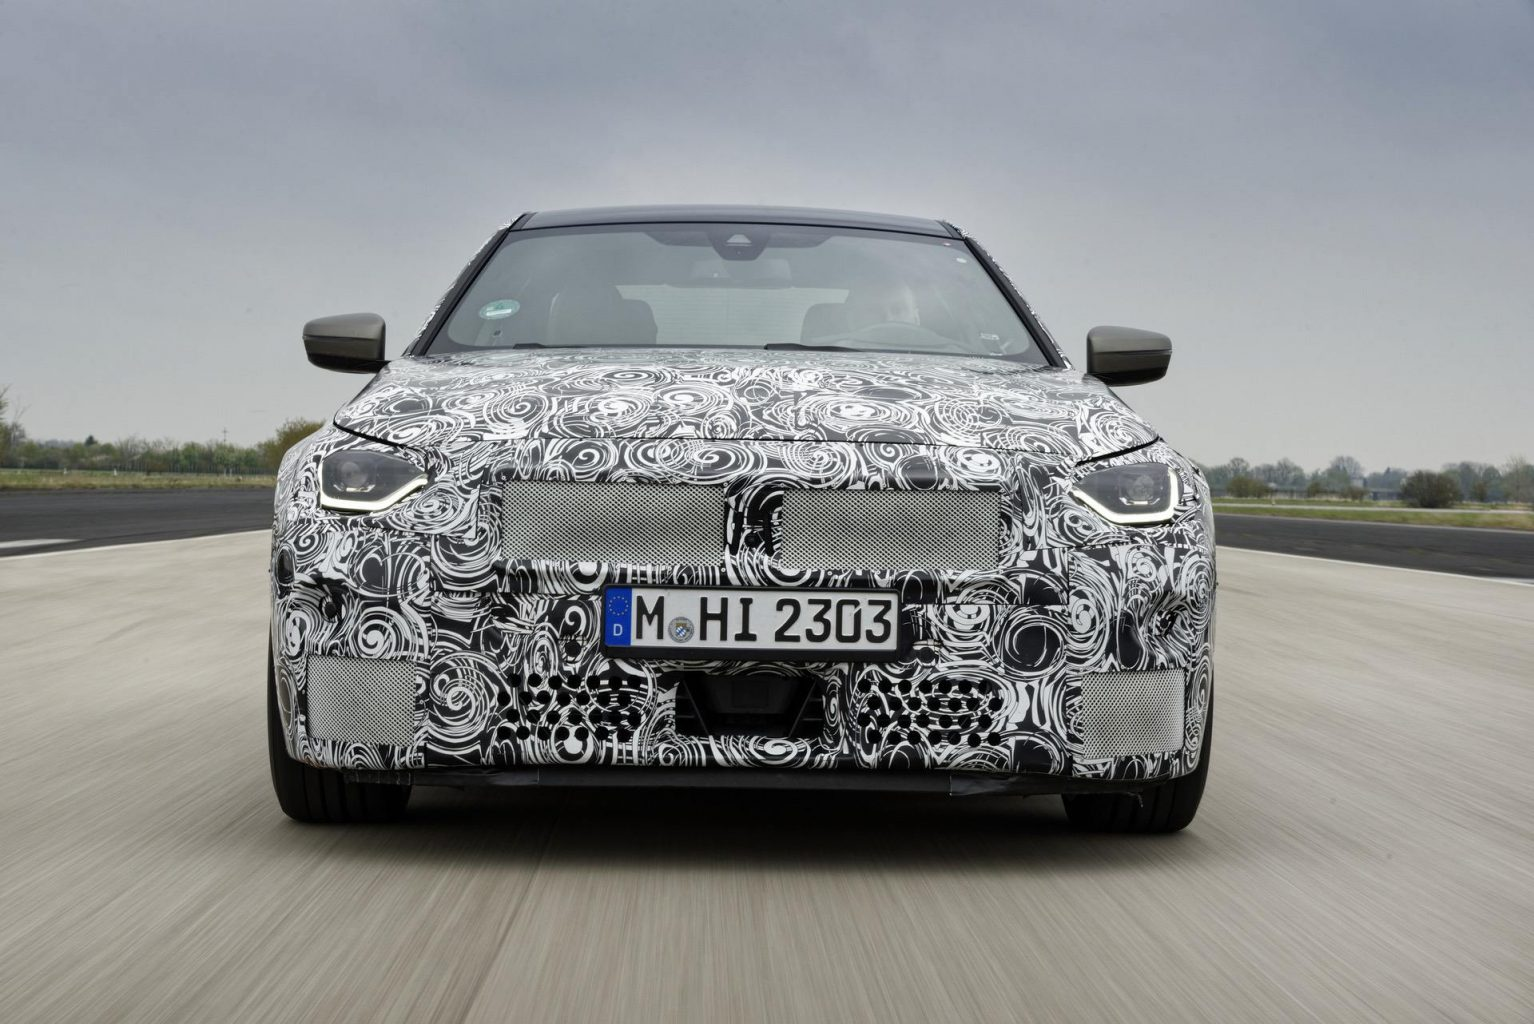 2022 bmw 2 series coupe camouflage 15 1534x1024